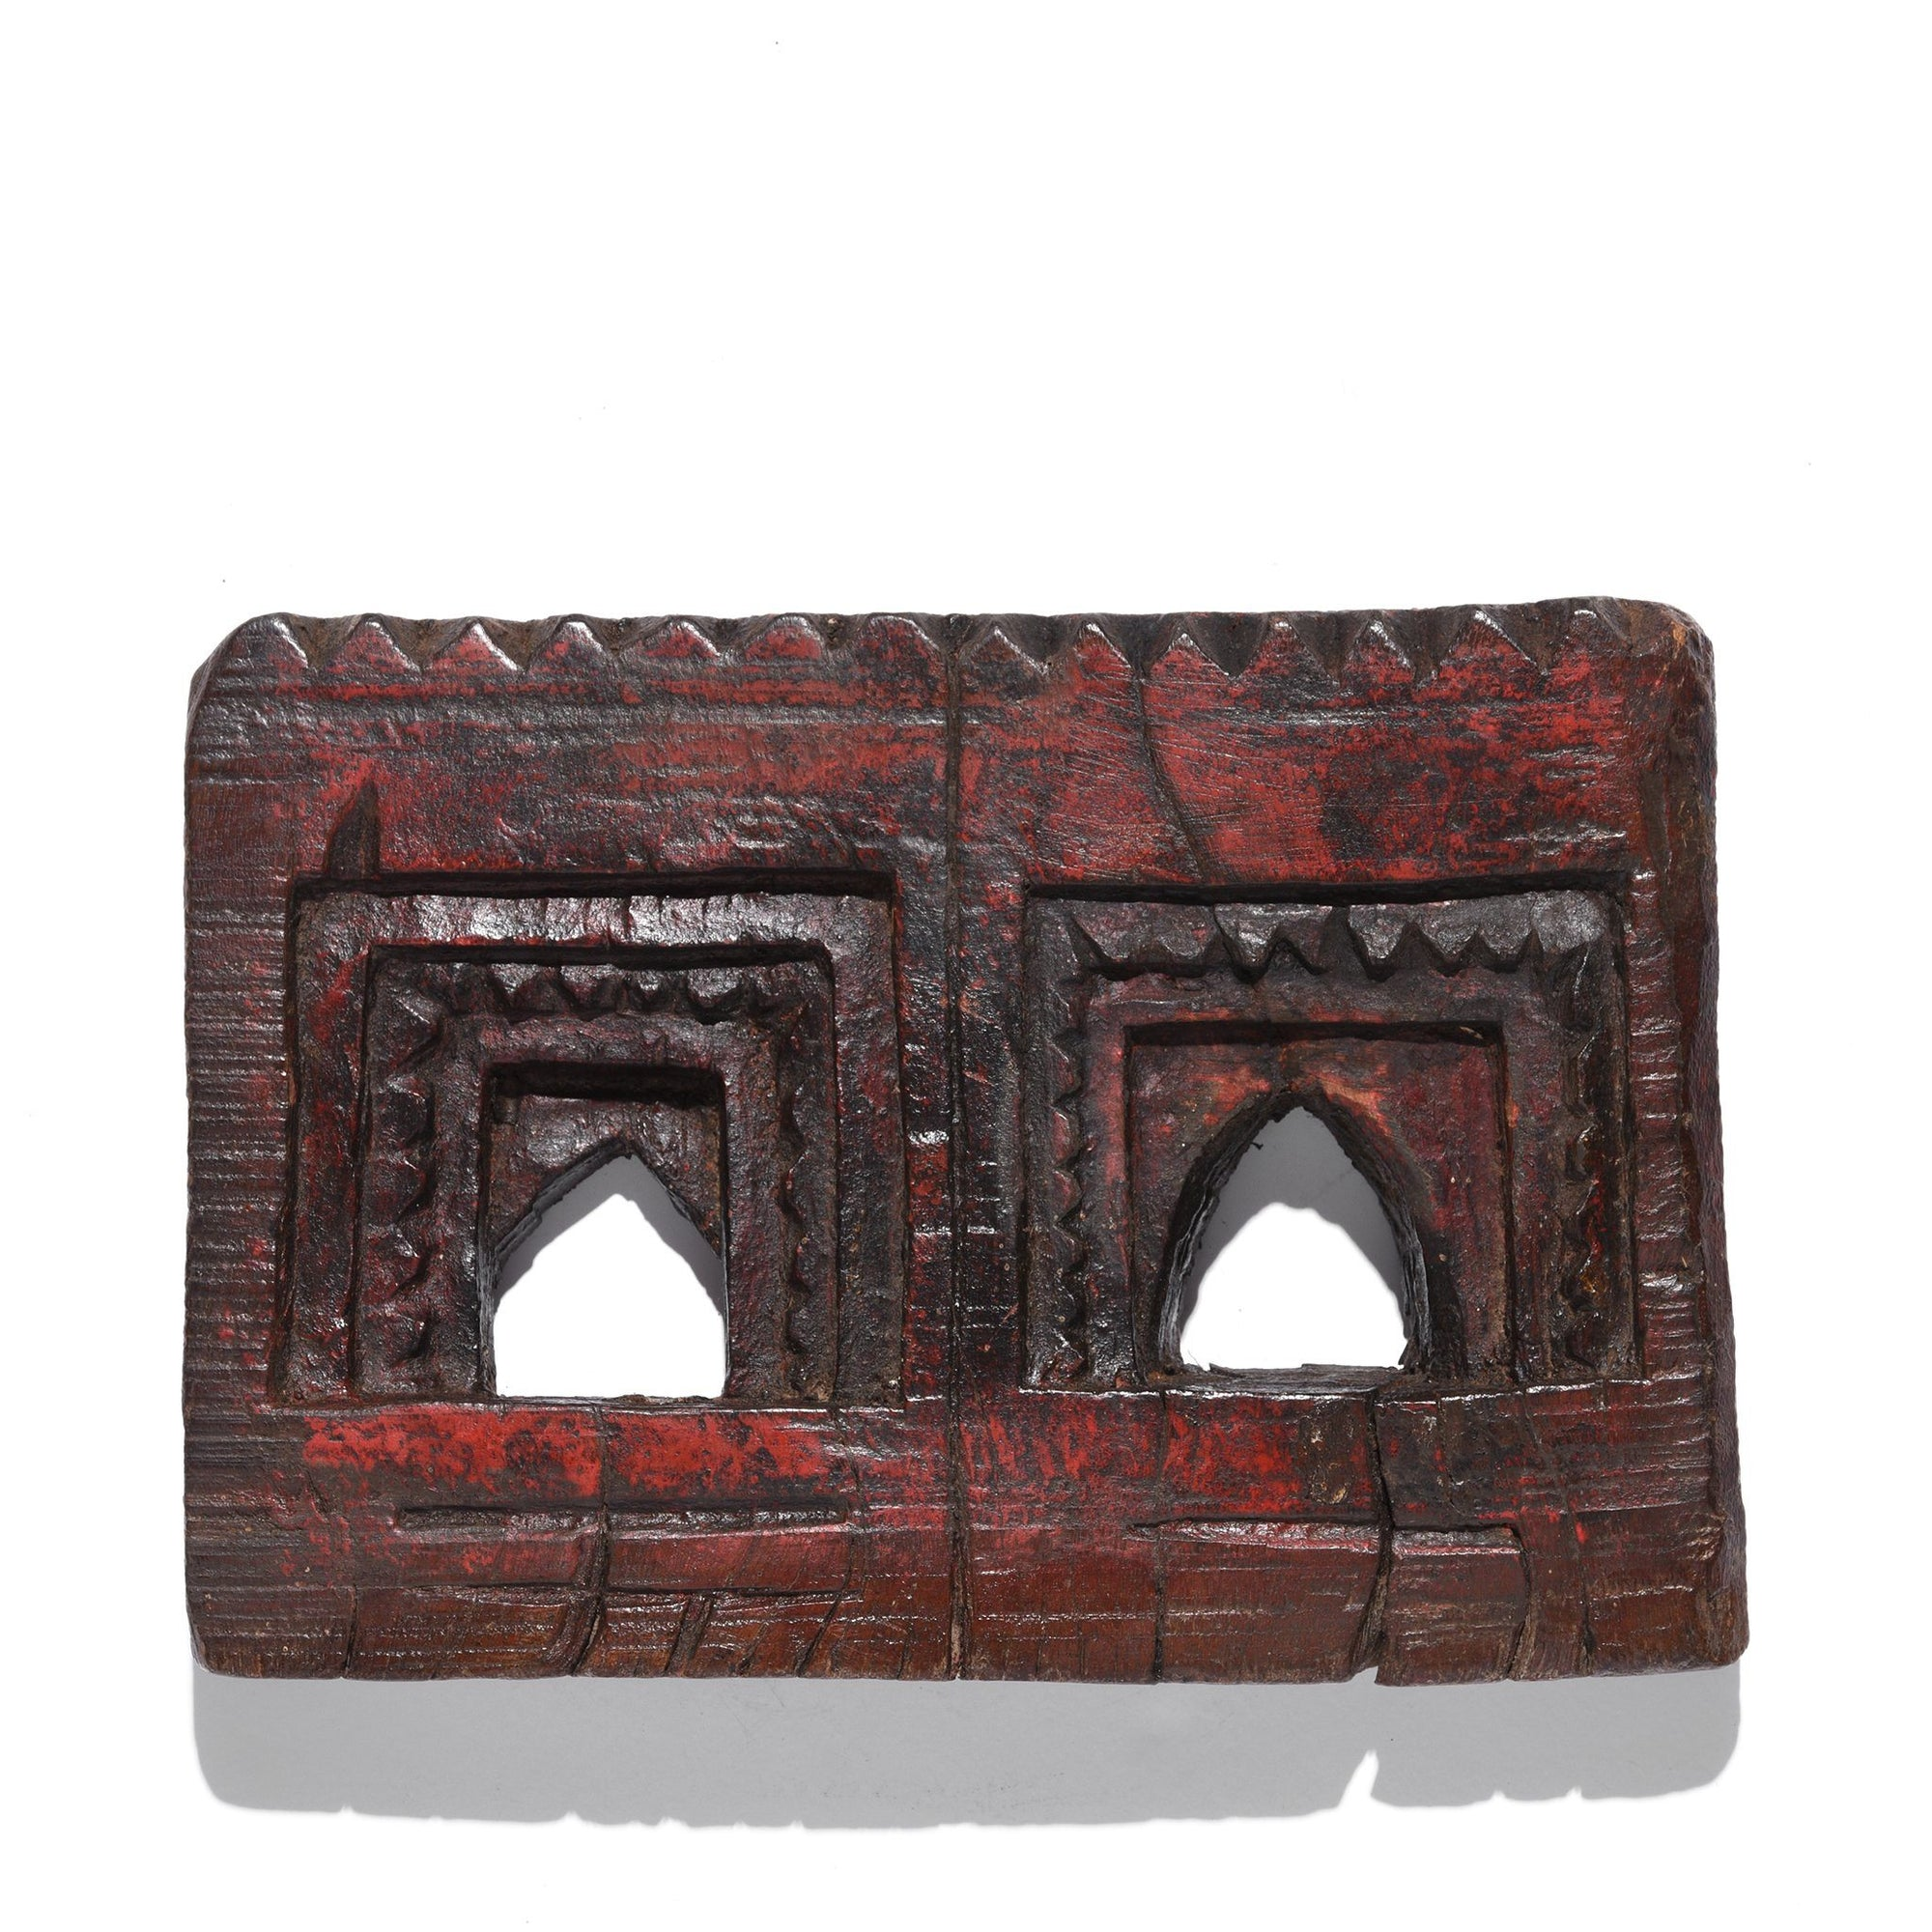 Carved Teak Votive Panel From Andra Pradesh - 80-120 Yrs Old | Indigo Oriental Antiques